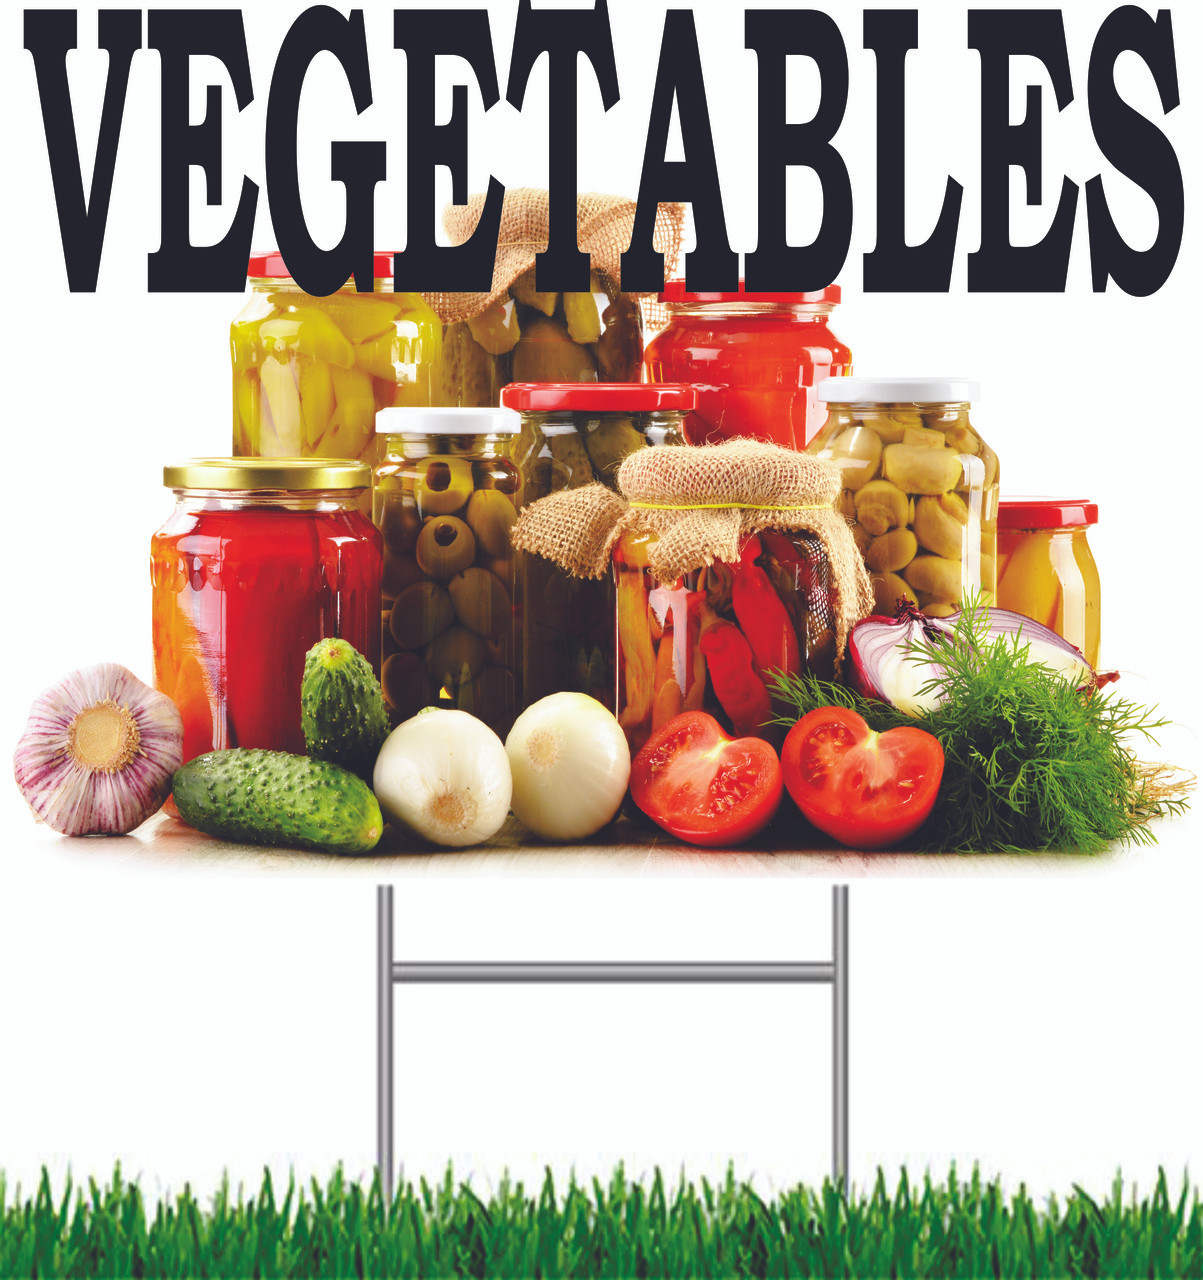 Vegetable Yard Signs draws in shoppers.